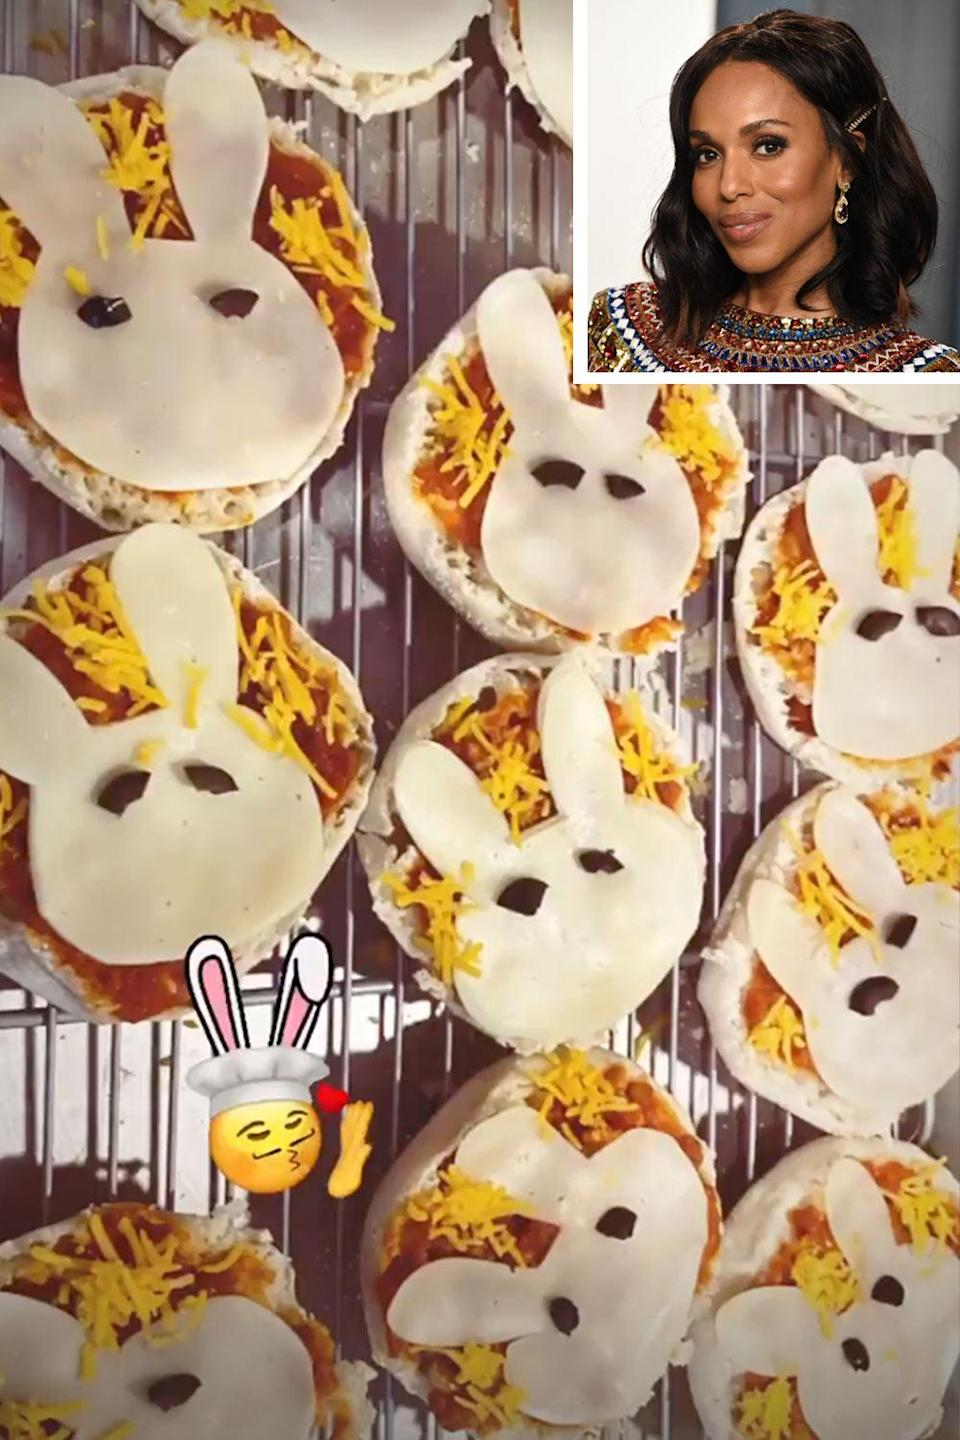 <p>Forget chocolate eggs, we want bunny pizzas! The <em>Little Fires Everywhere</em> star made these adorable mini pizzas for Easter. </p>